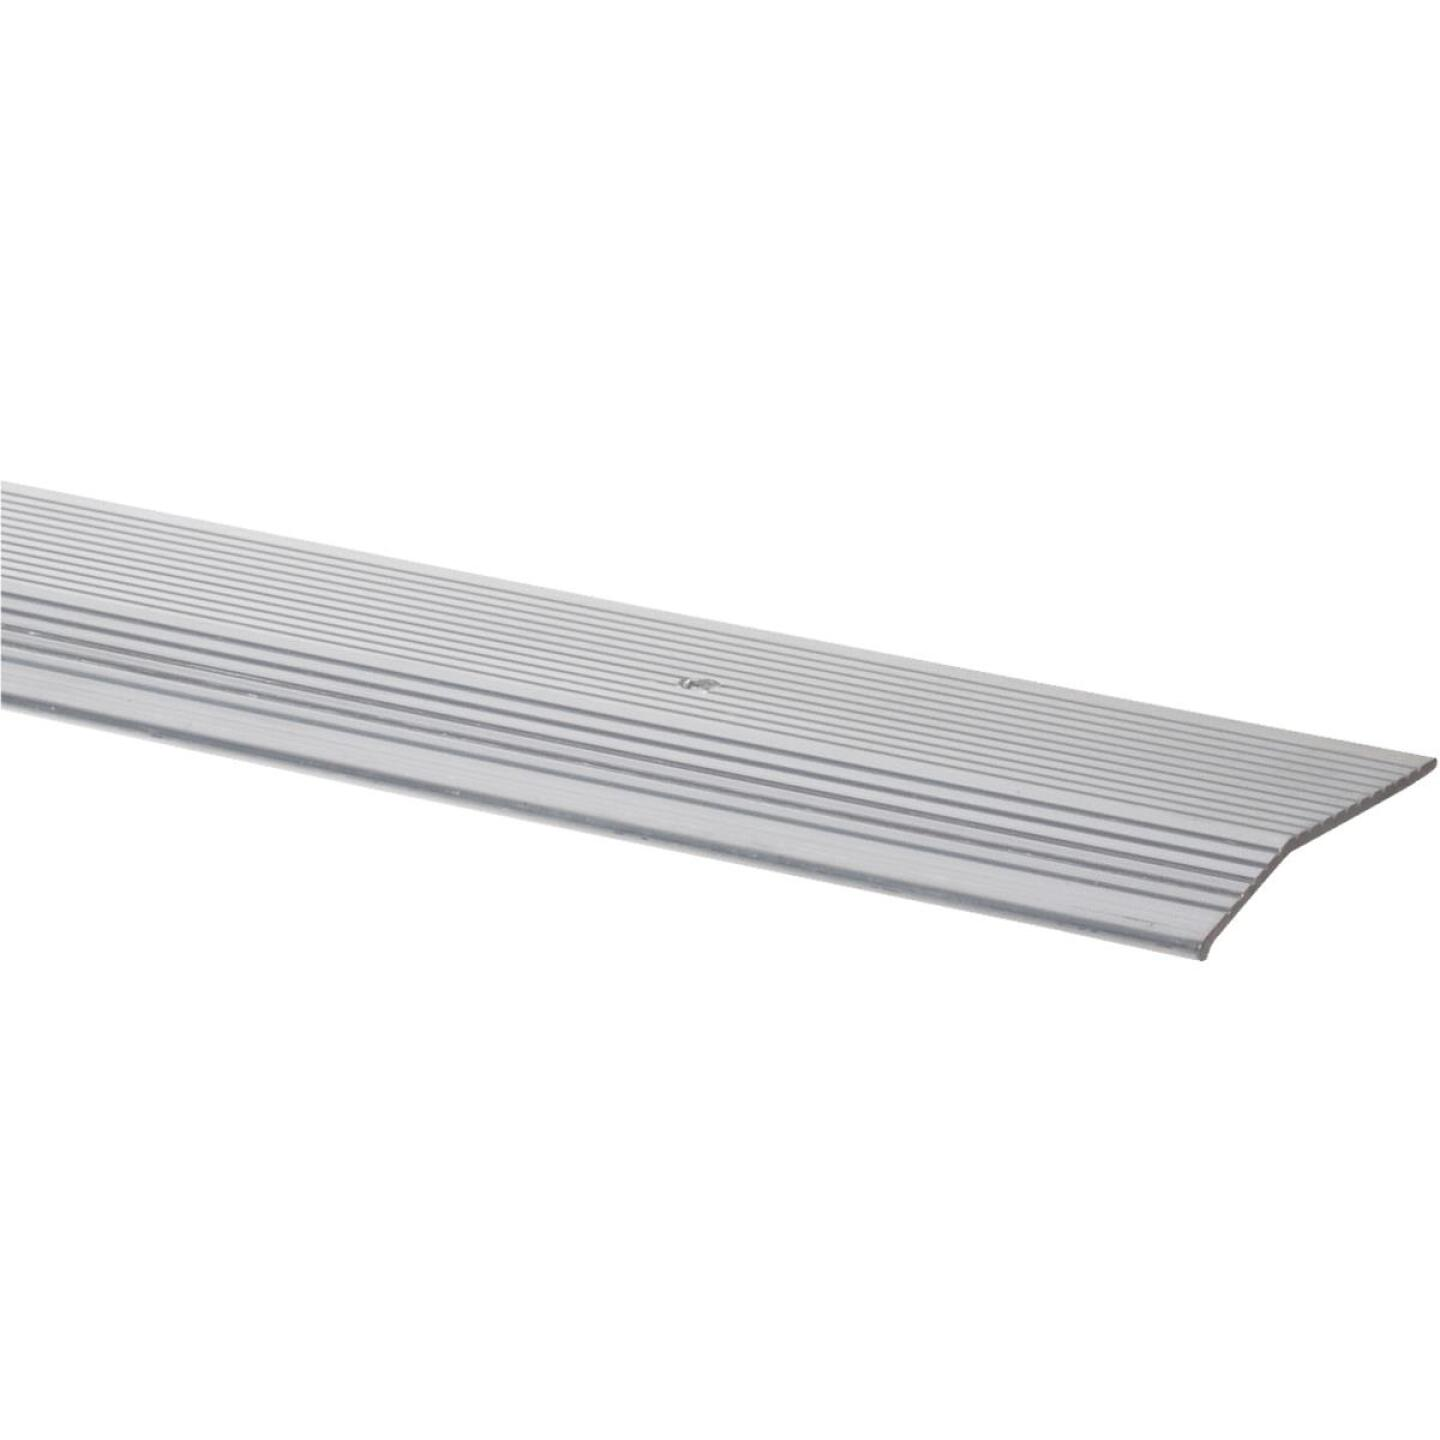 M-D Satin Silver Fluted 2 In. x 3 Ft. Aluminum Carpet Trim Bar, Extra Wide Image 1